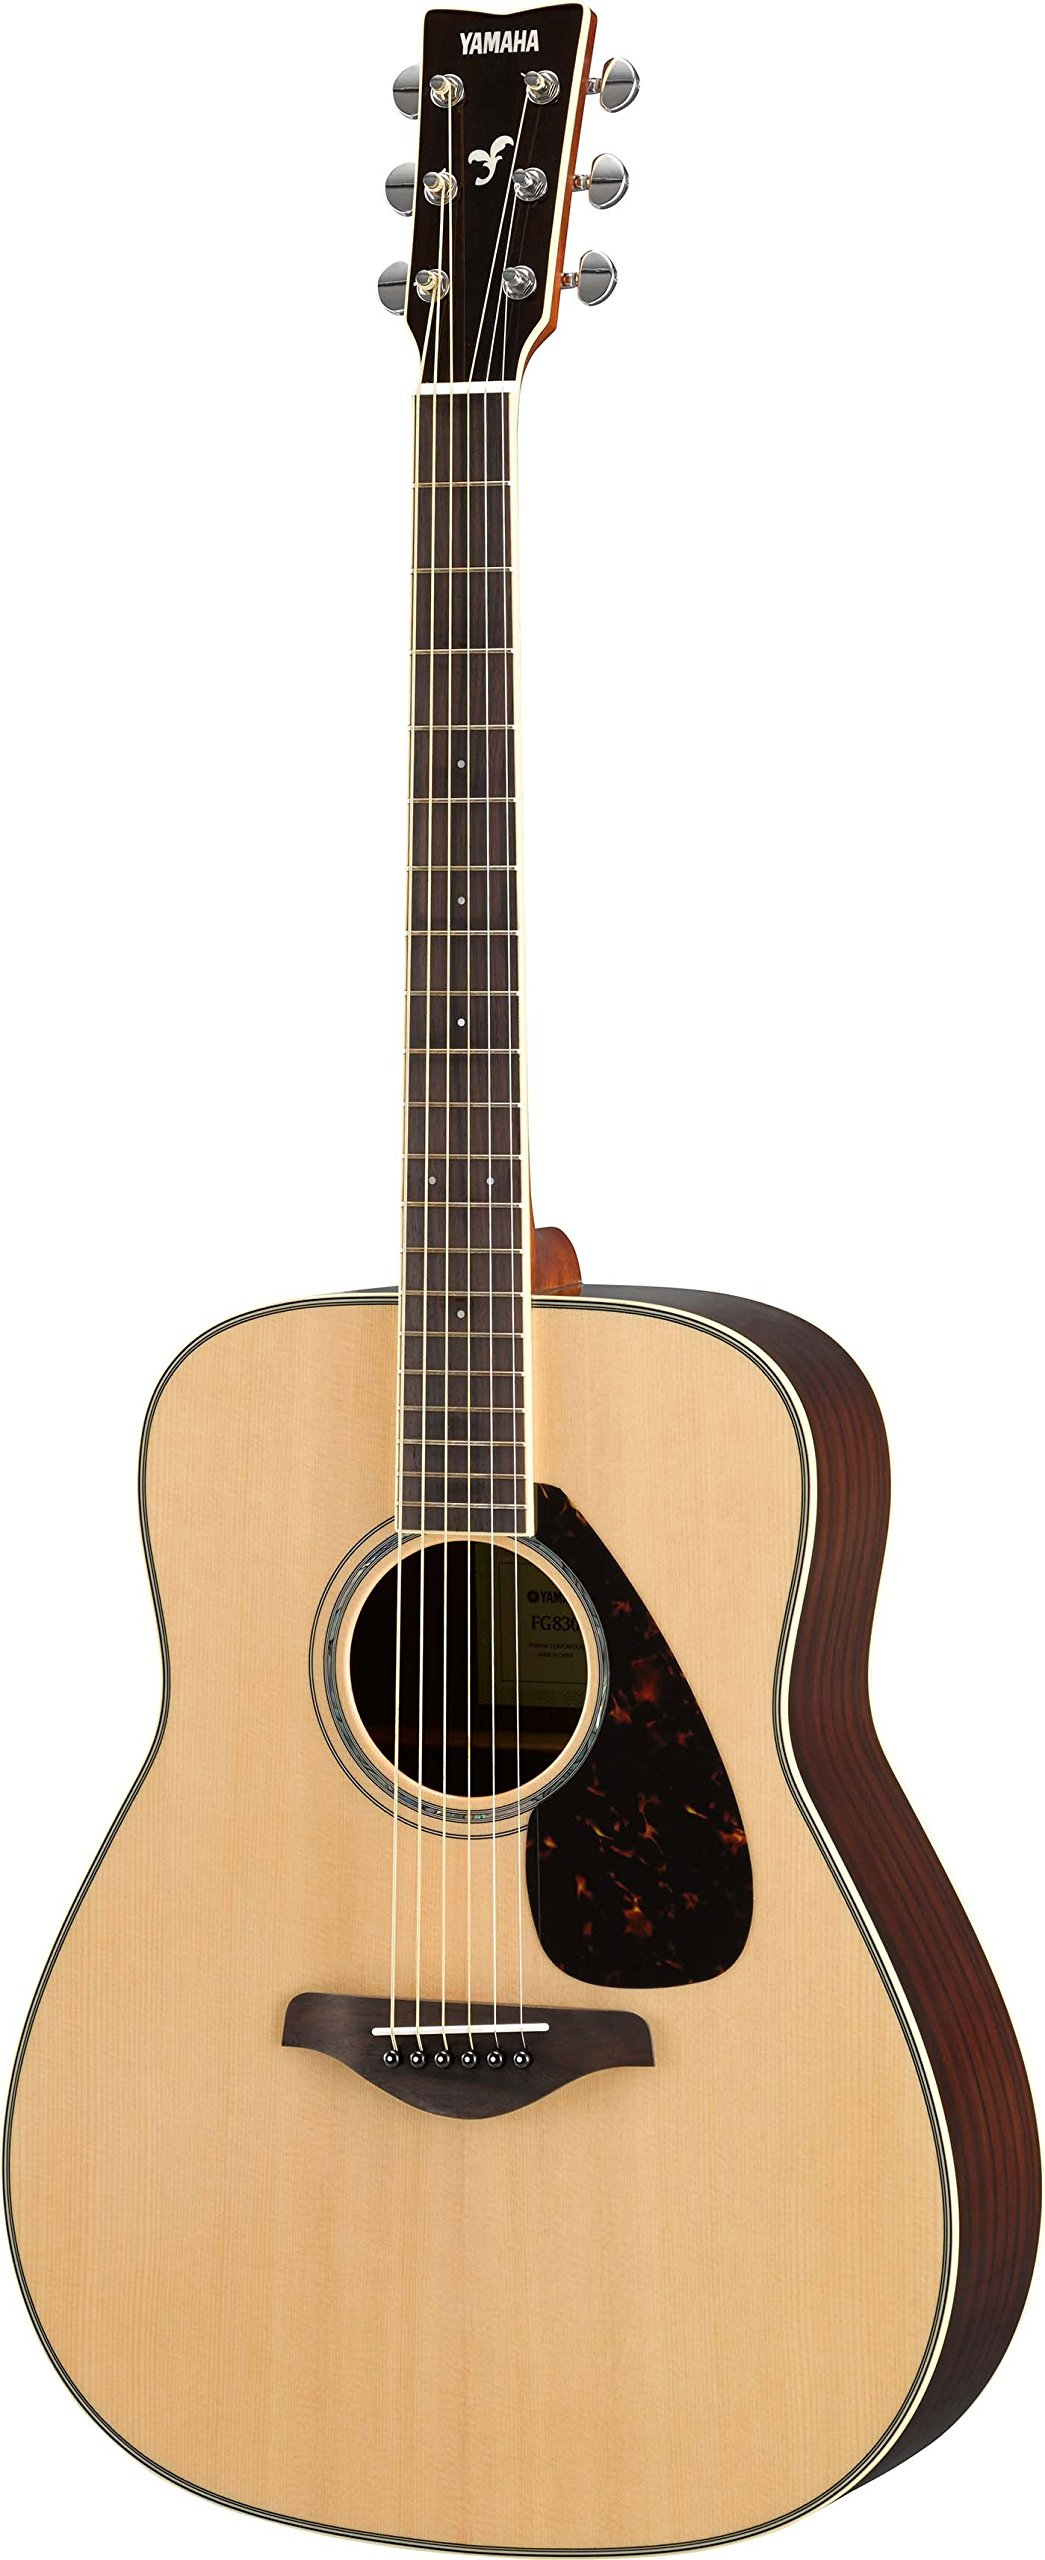 Yamaha Fg830 Solid Top Folk Guitar, Natural by YAMAHA